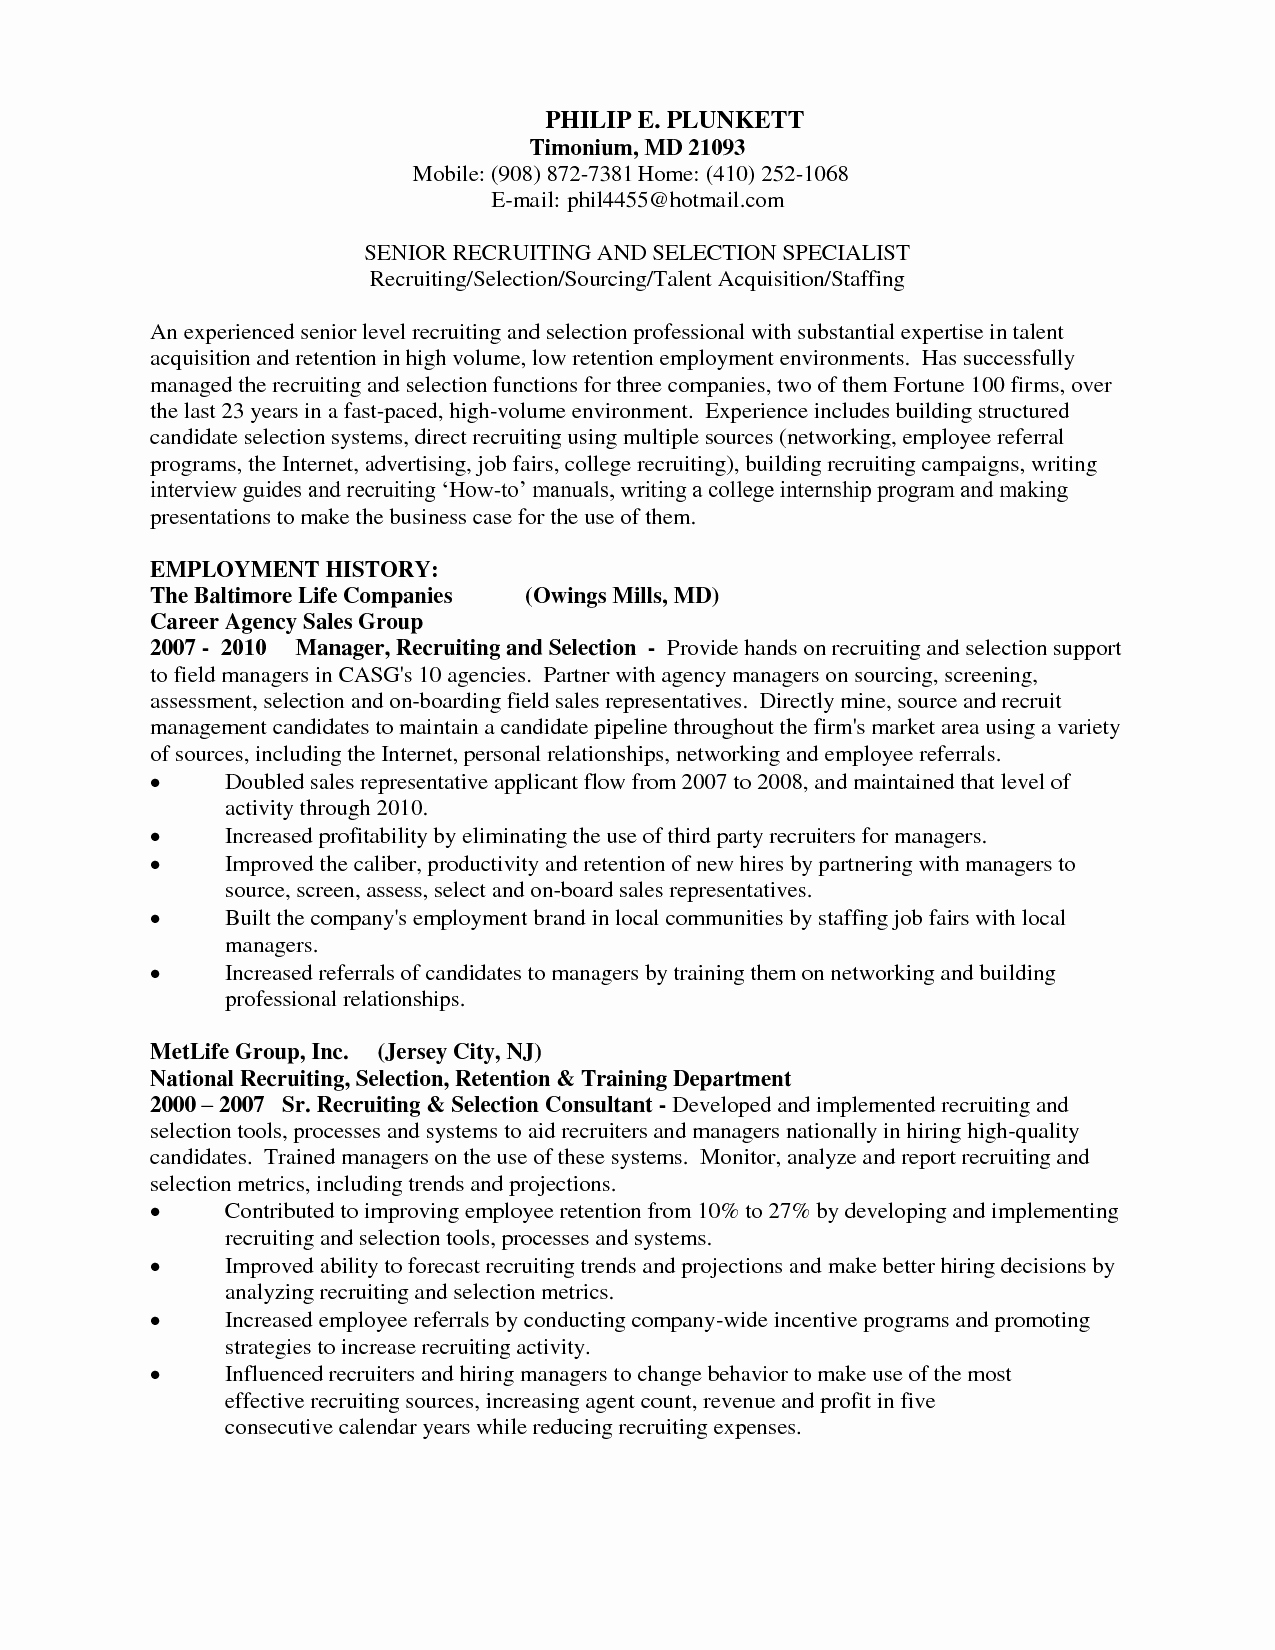 information technology cover letter template Collection-Information Technology Cover Letter Beautiful Service Level Agreement Sample for Information Technology Luxury Od 18-i